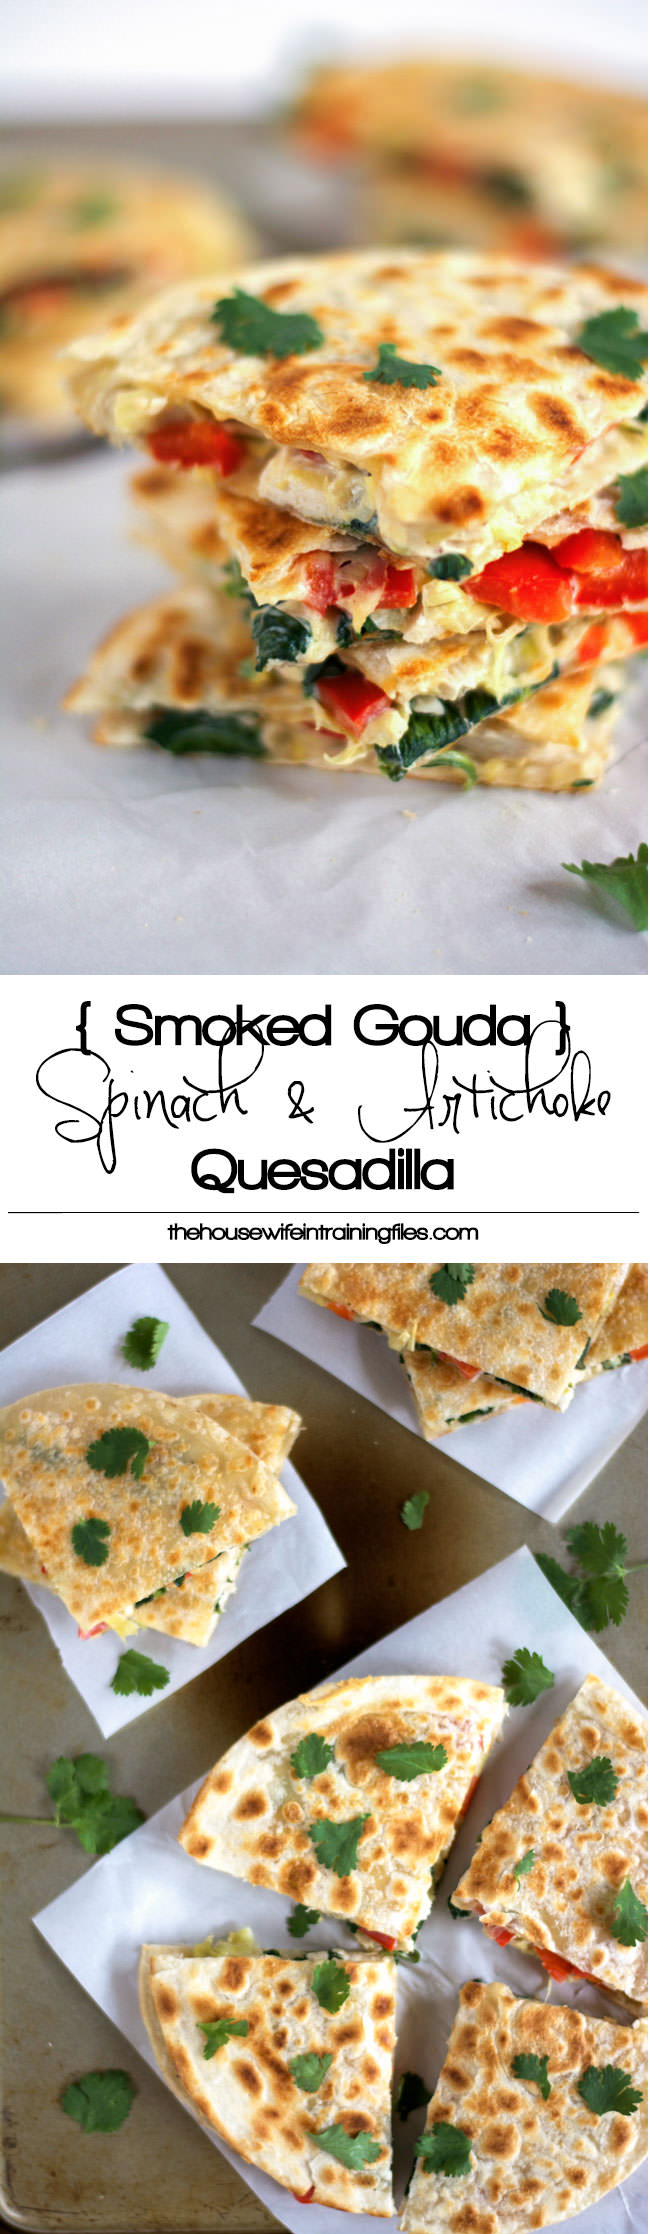 These Smoked Gouda & Turkey Artichoke Quesadillas come together quickly using leftover turkey, two types of cheese, red peppers and artichokes! They are a delicious and easy appetizer or light dinner!